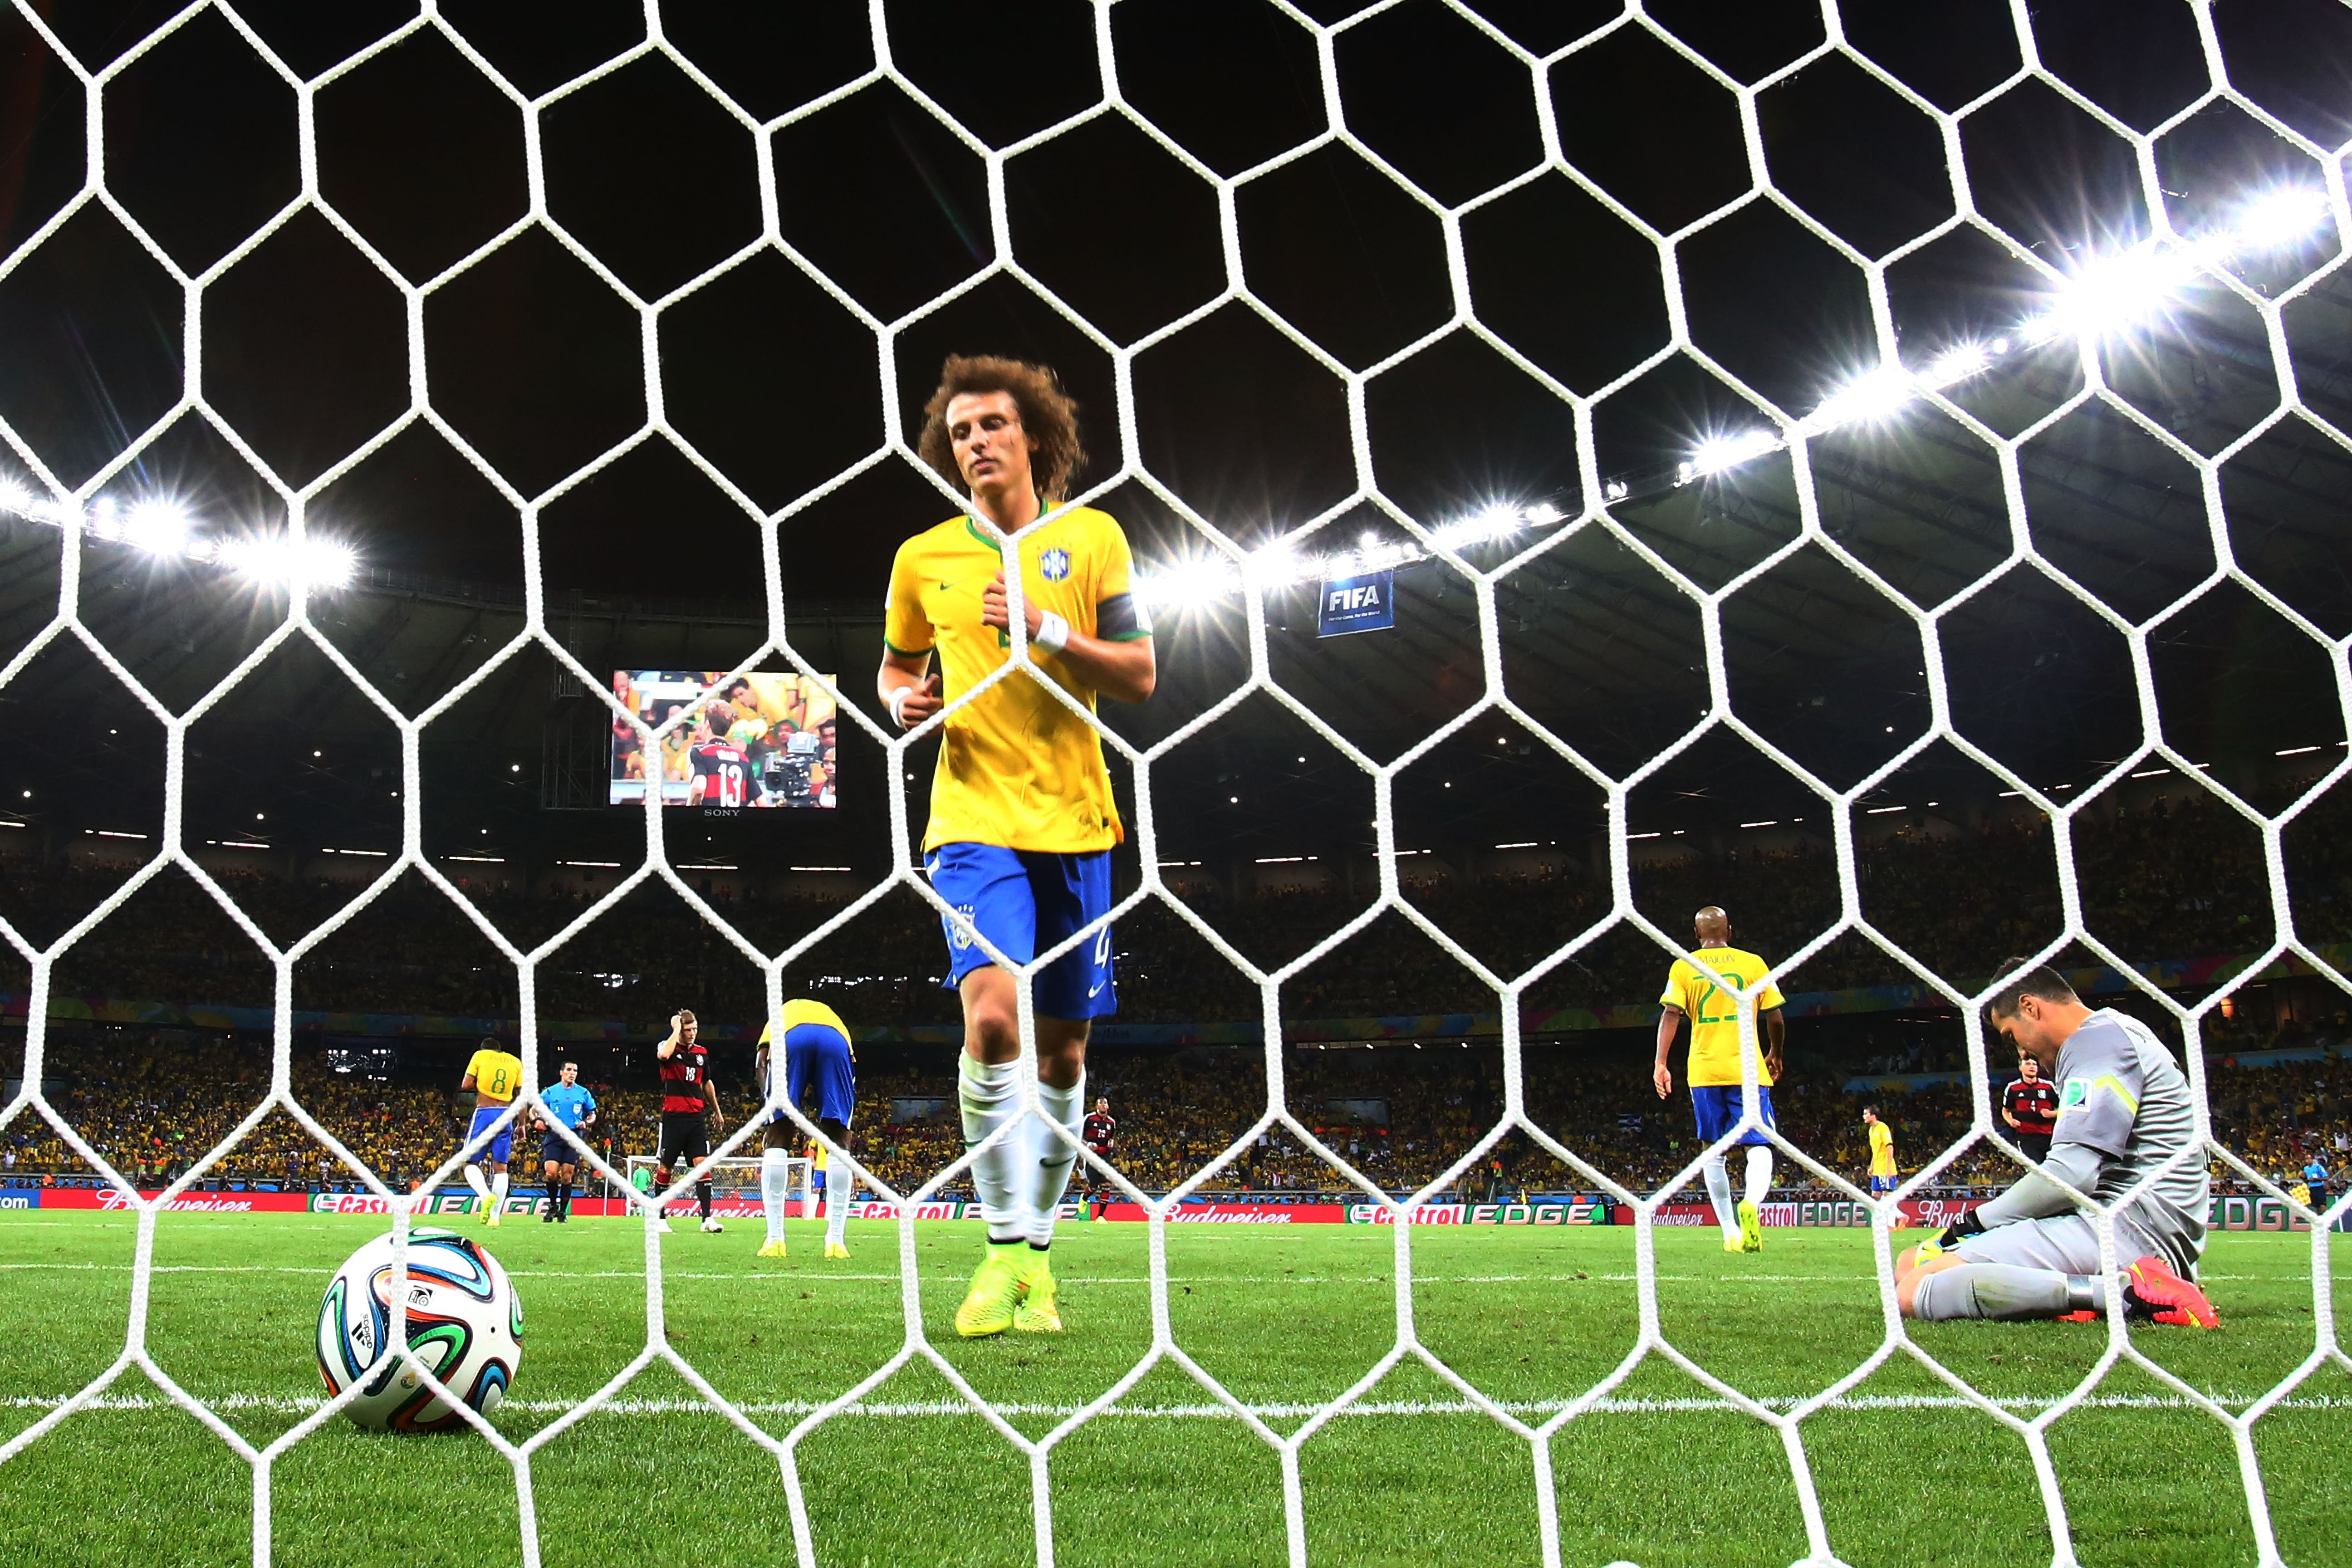 David Luiz of Brazil retrieves the ball from the net after Germany's sixth goal scored by Andre Schuerrle past goalkeeper Julio Cesar of Brazil at Estadio Mineirao on July 8, 2014 in Belo Horizonte, Brazil.